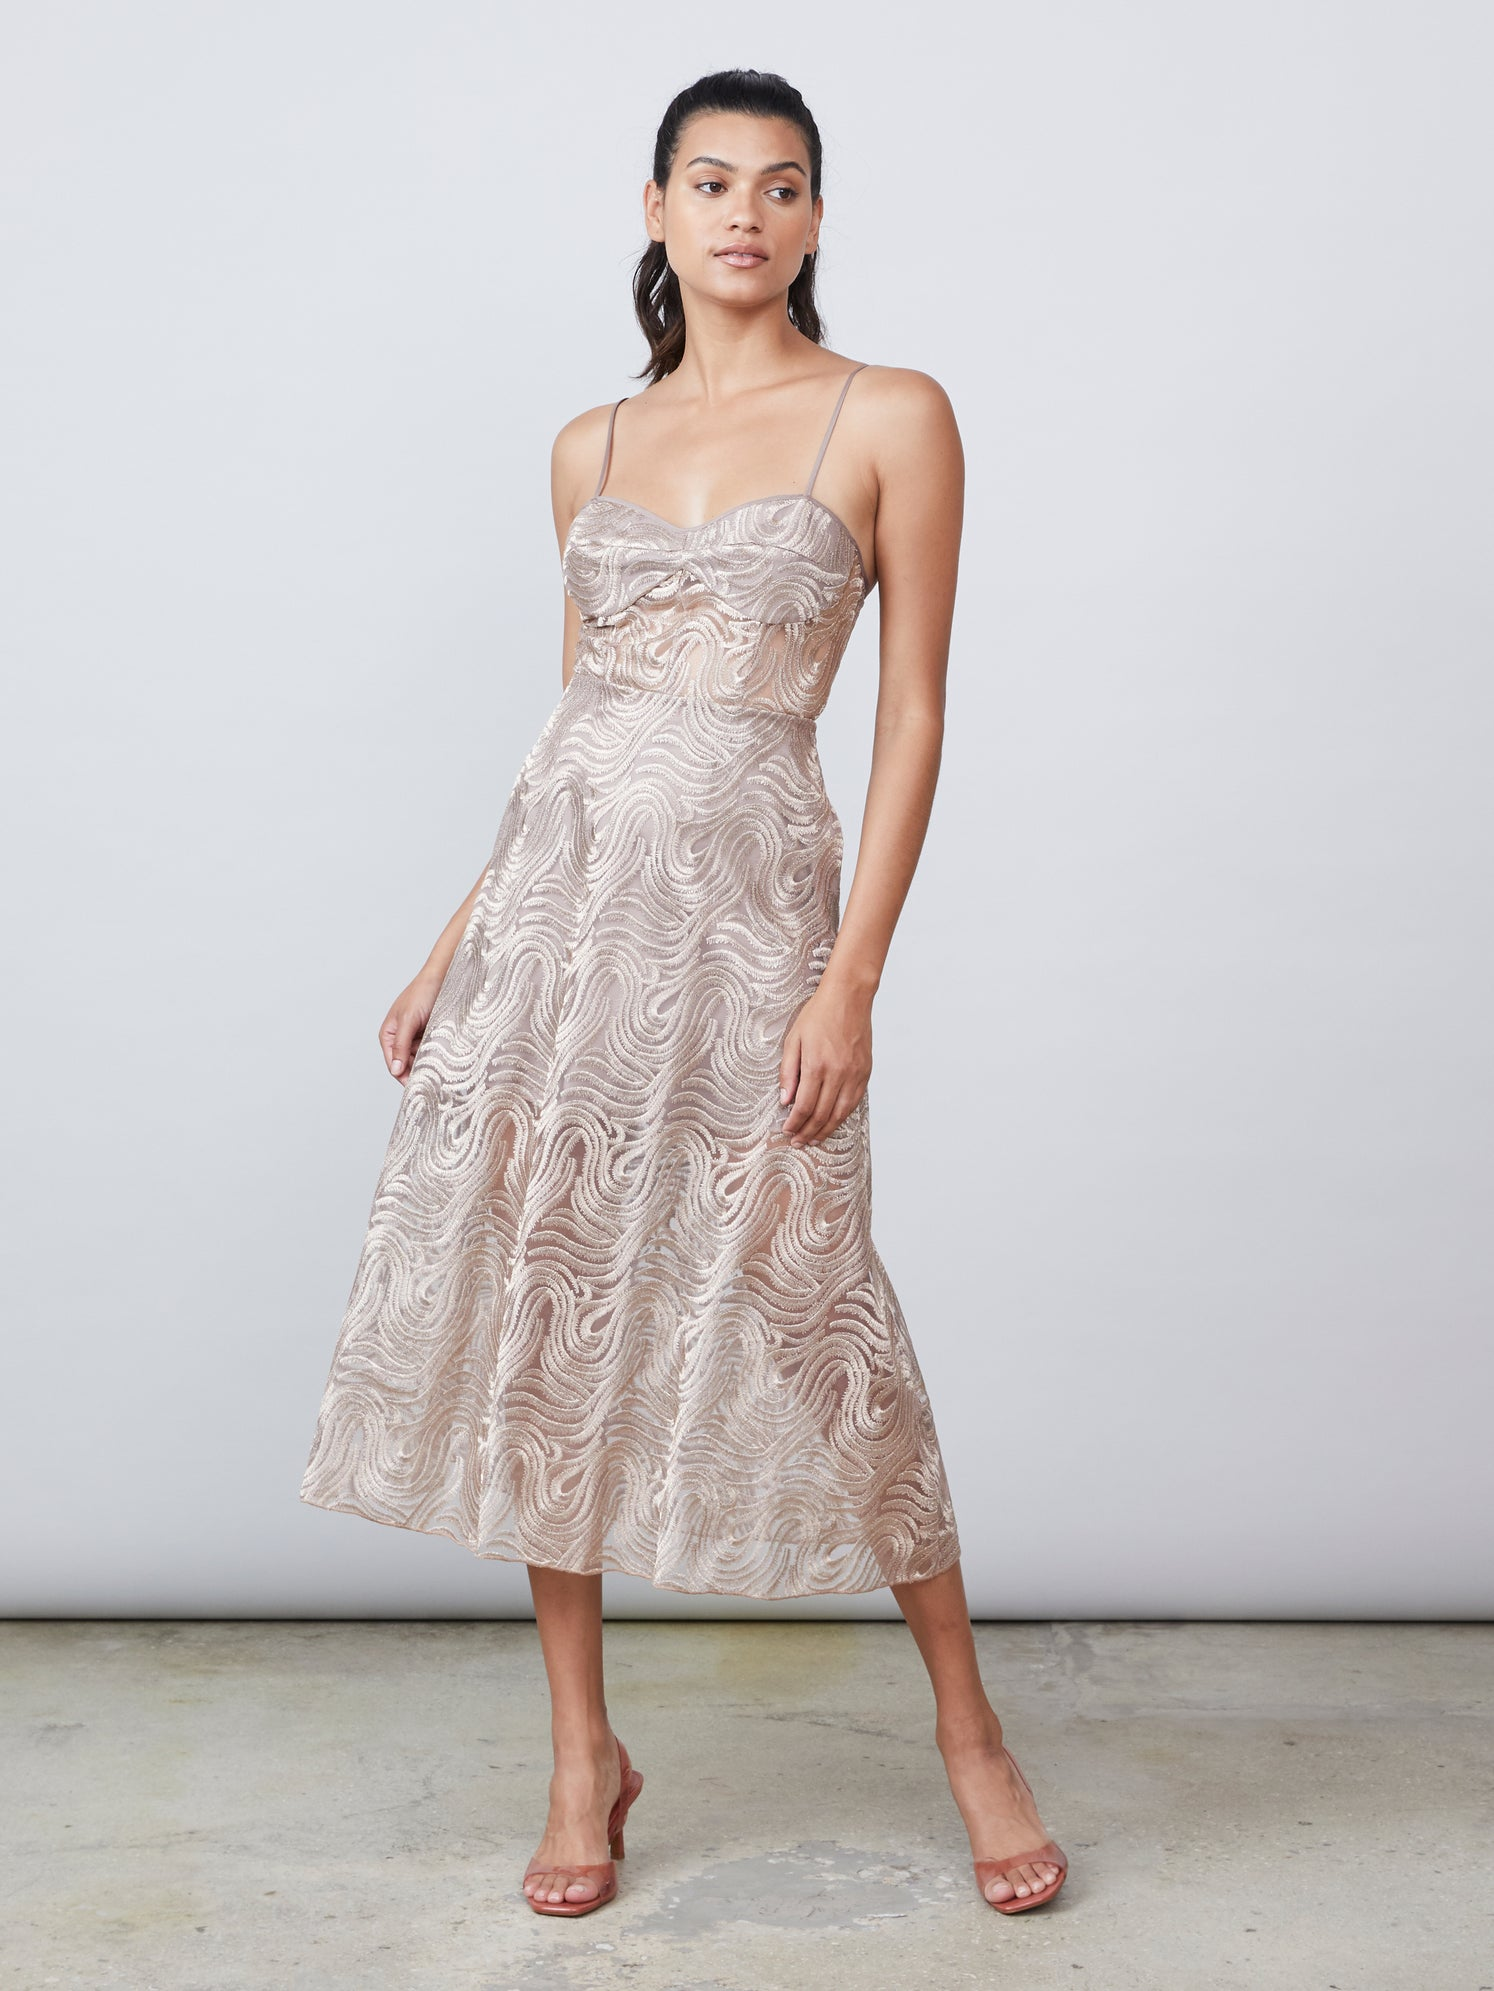 Metallic embroidered jacquard lace bustier dress with semi sheer bodice and side pockets